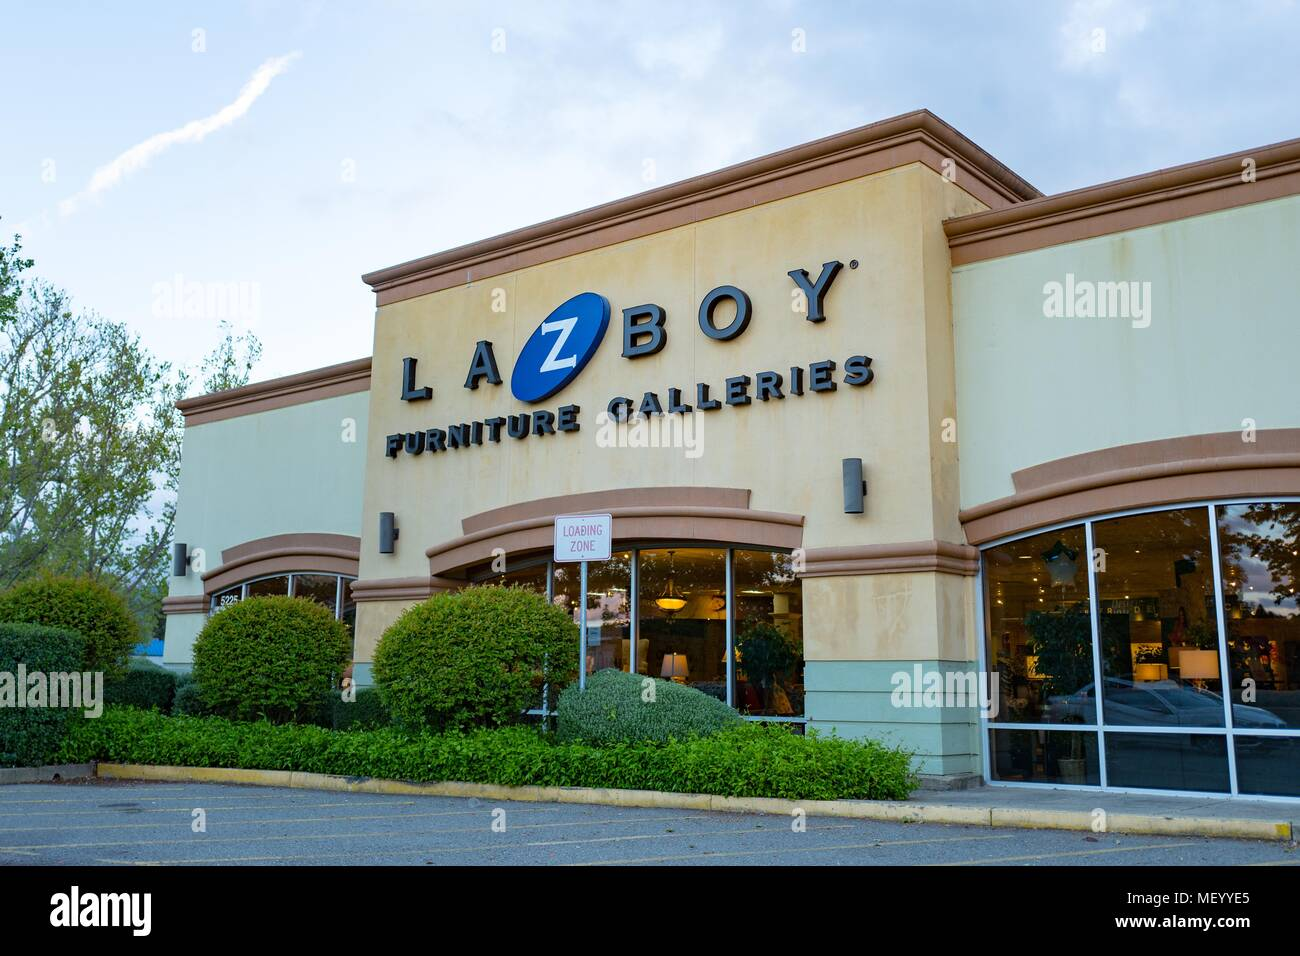 Facade With Sign And Logo At The La Z Boy Furniture Store In Pleasanton,  California, April 16, 2018. ()